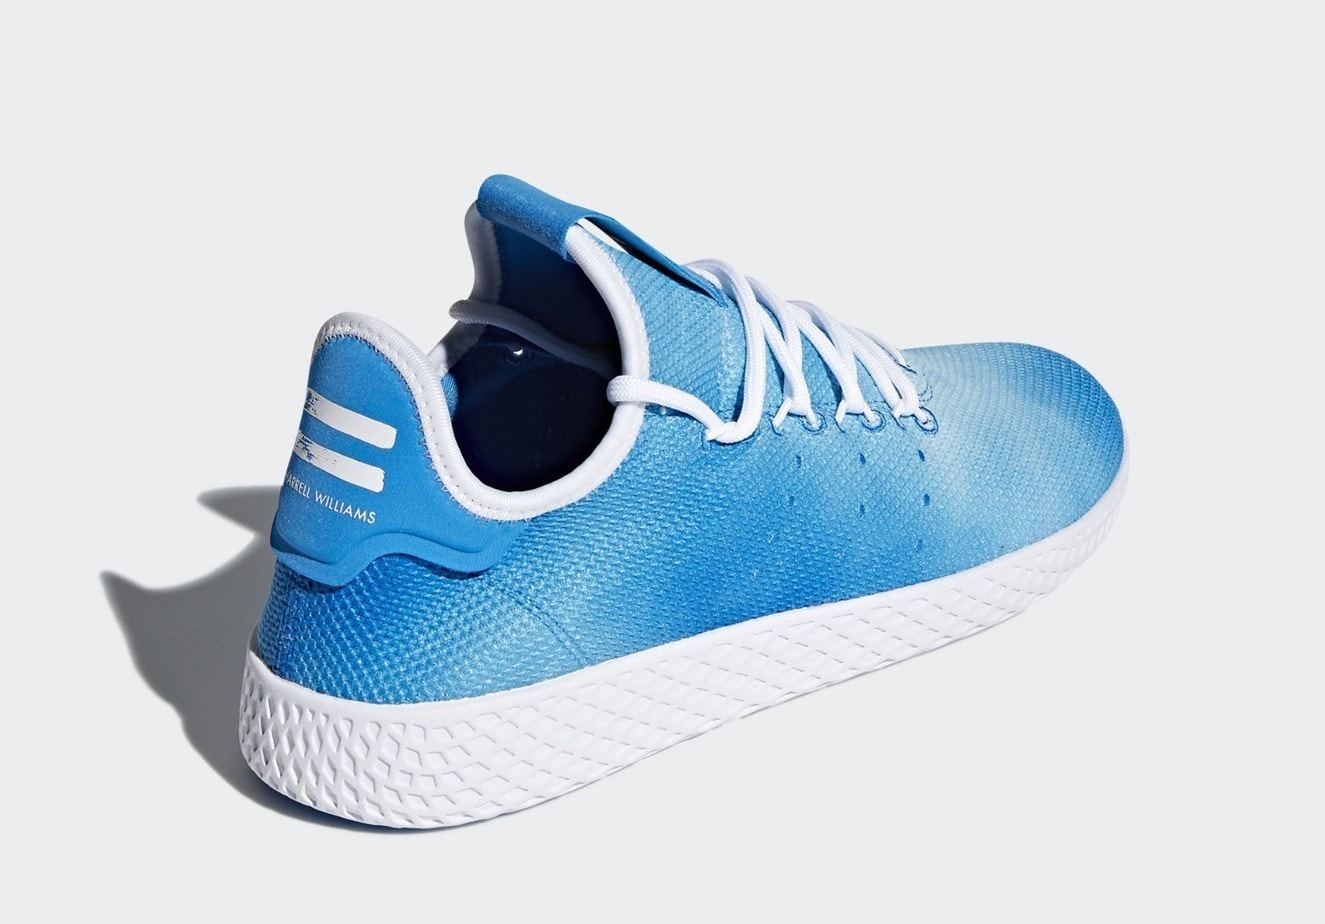 318ed815e3f04 Pharrell s adidas Tennis Hu Arrives in Two Bright Colors Soon ...